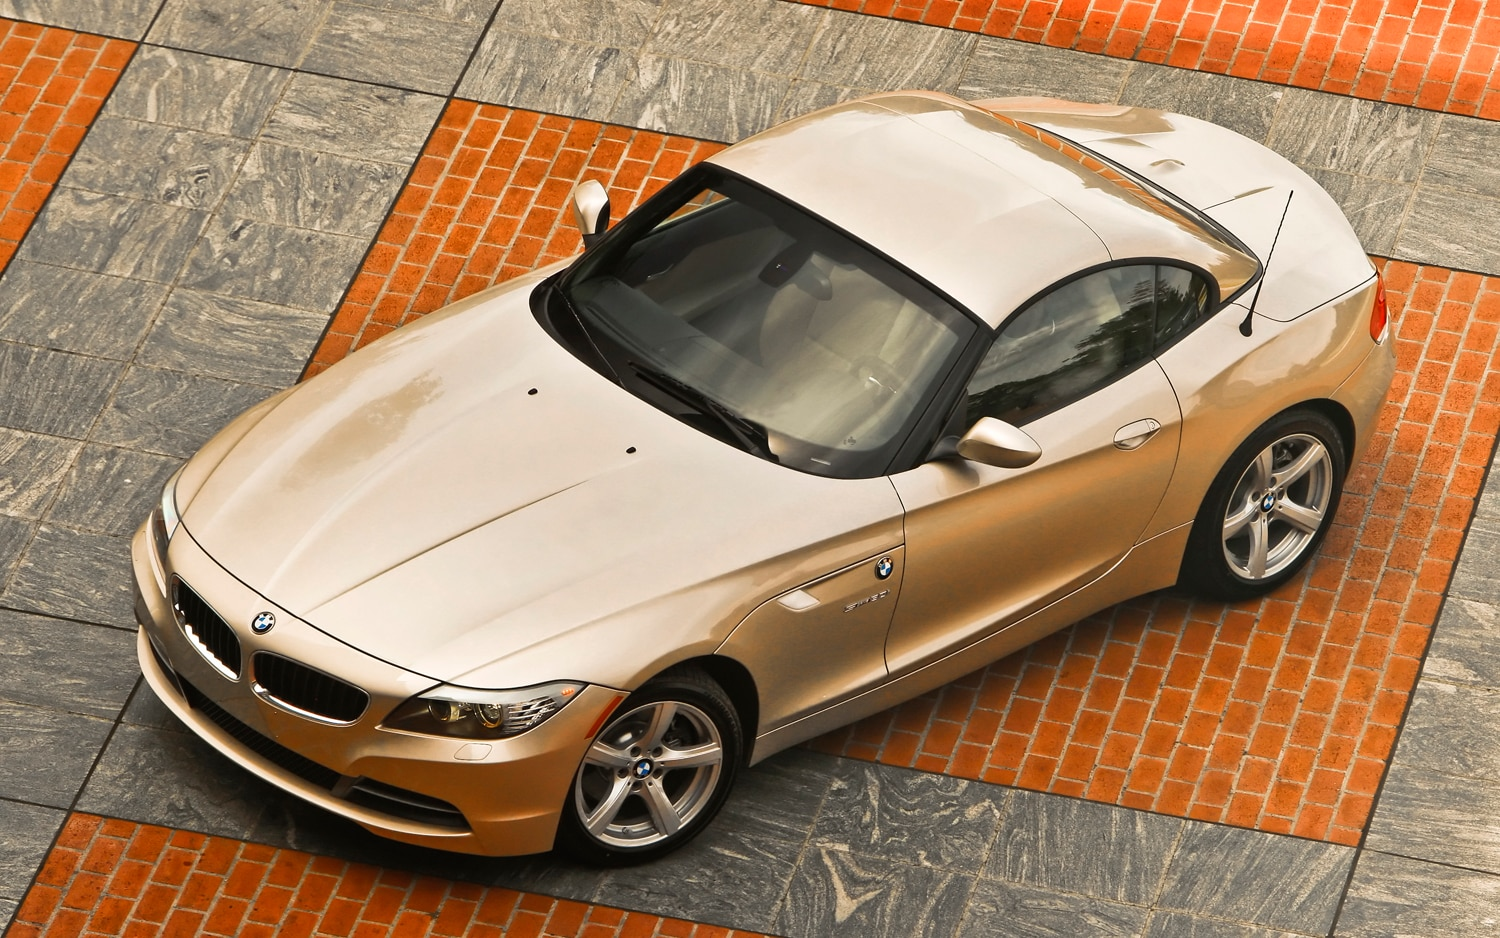 2011 BMW Z4 SDrive30i From Above1